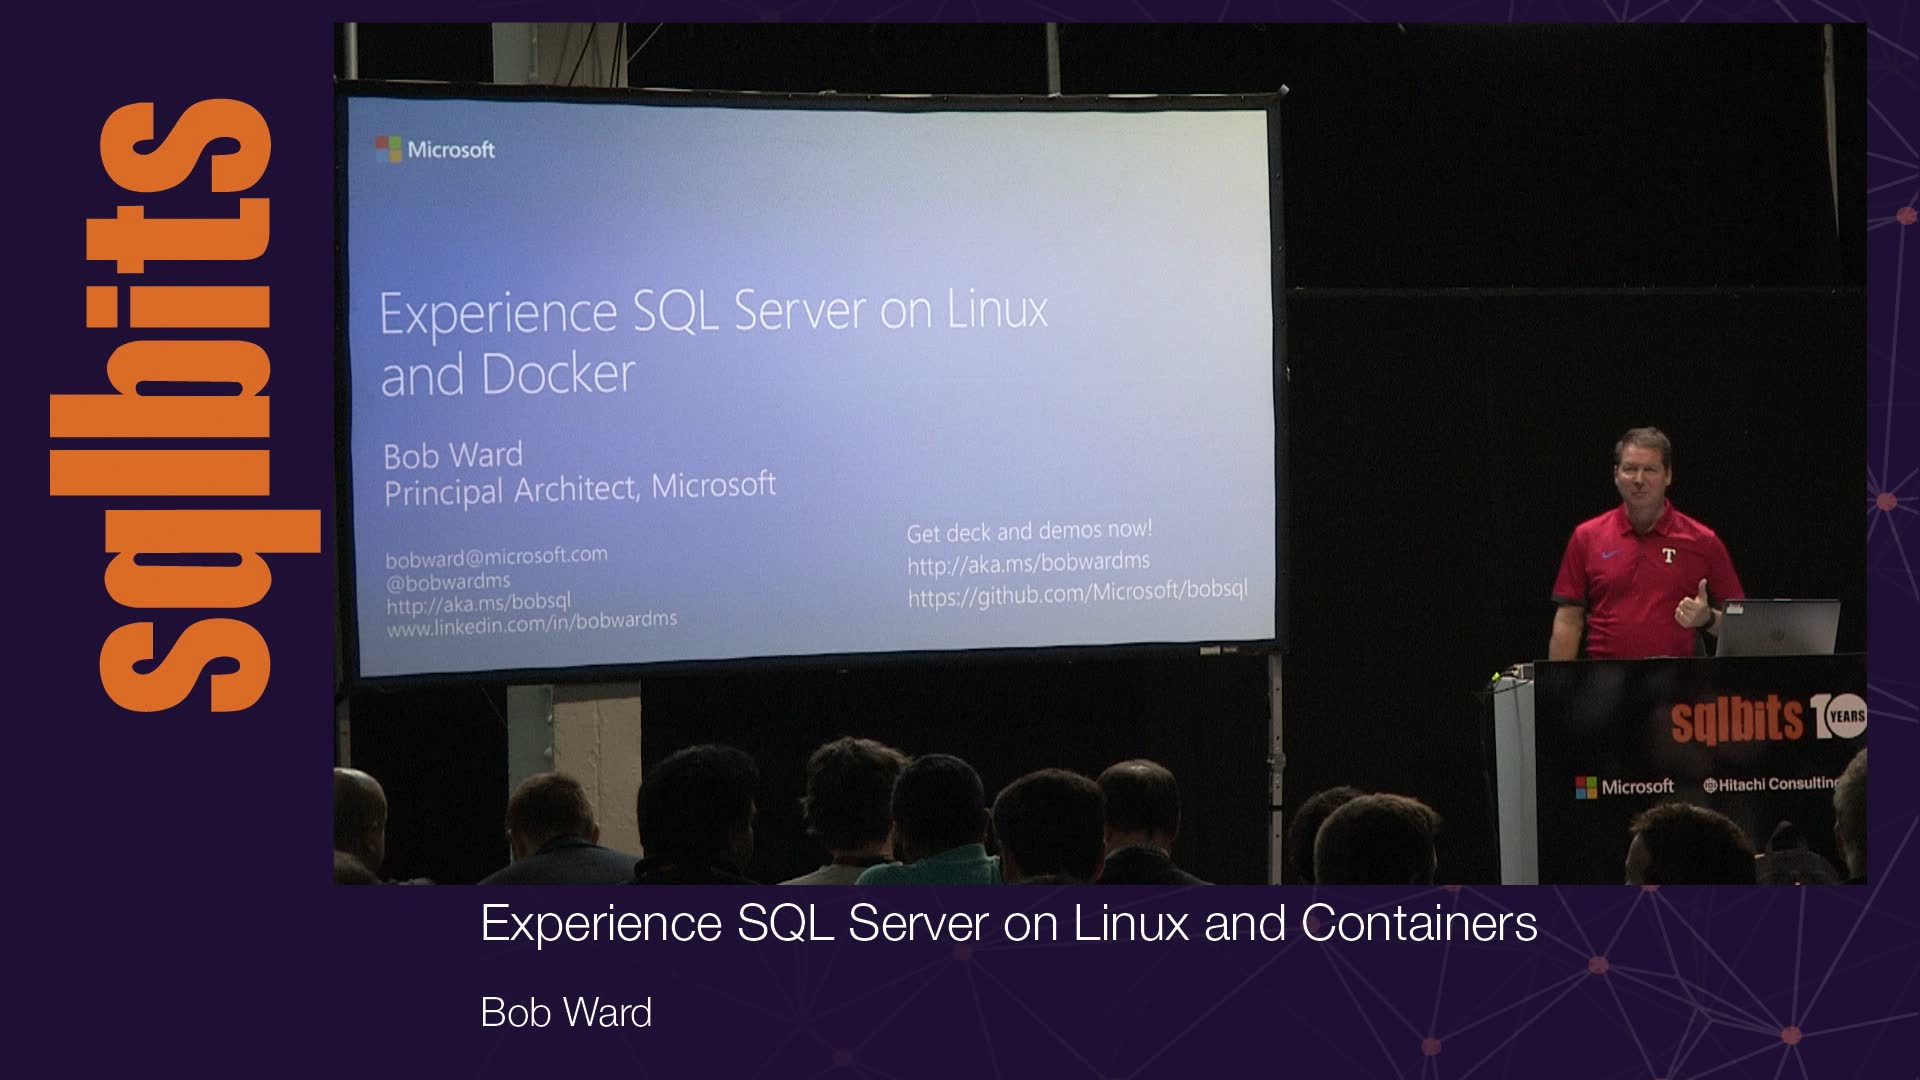 Experience SQL Server on Linux and Containers with Bob Ward